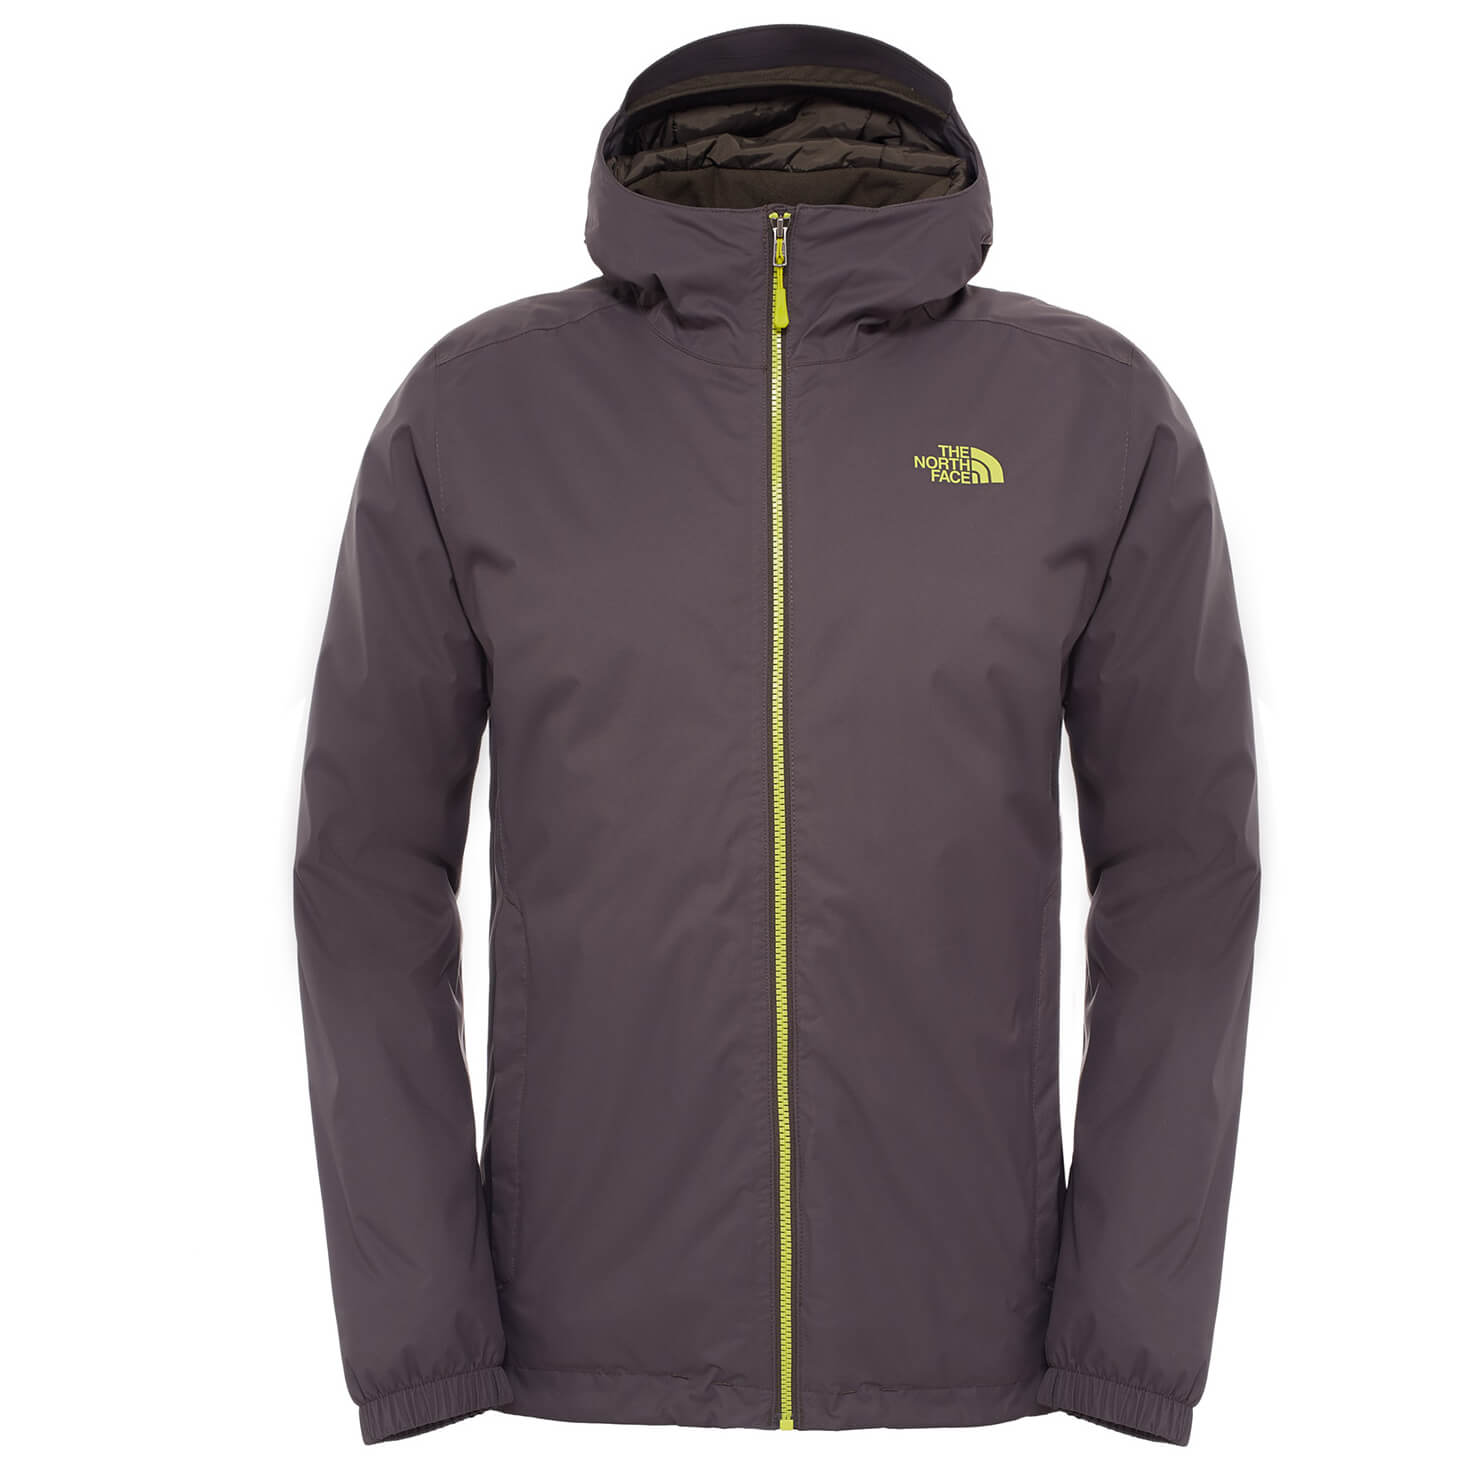 the north face quest insulated jacket winterjacke online kaufen. Black Bedroom Furniture Sets. Home Design Ideas